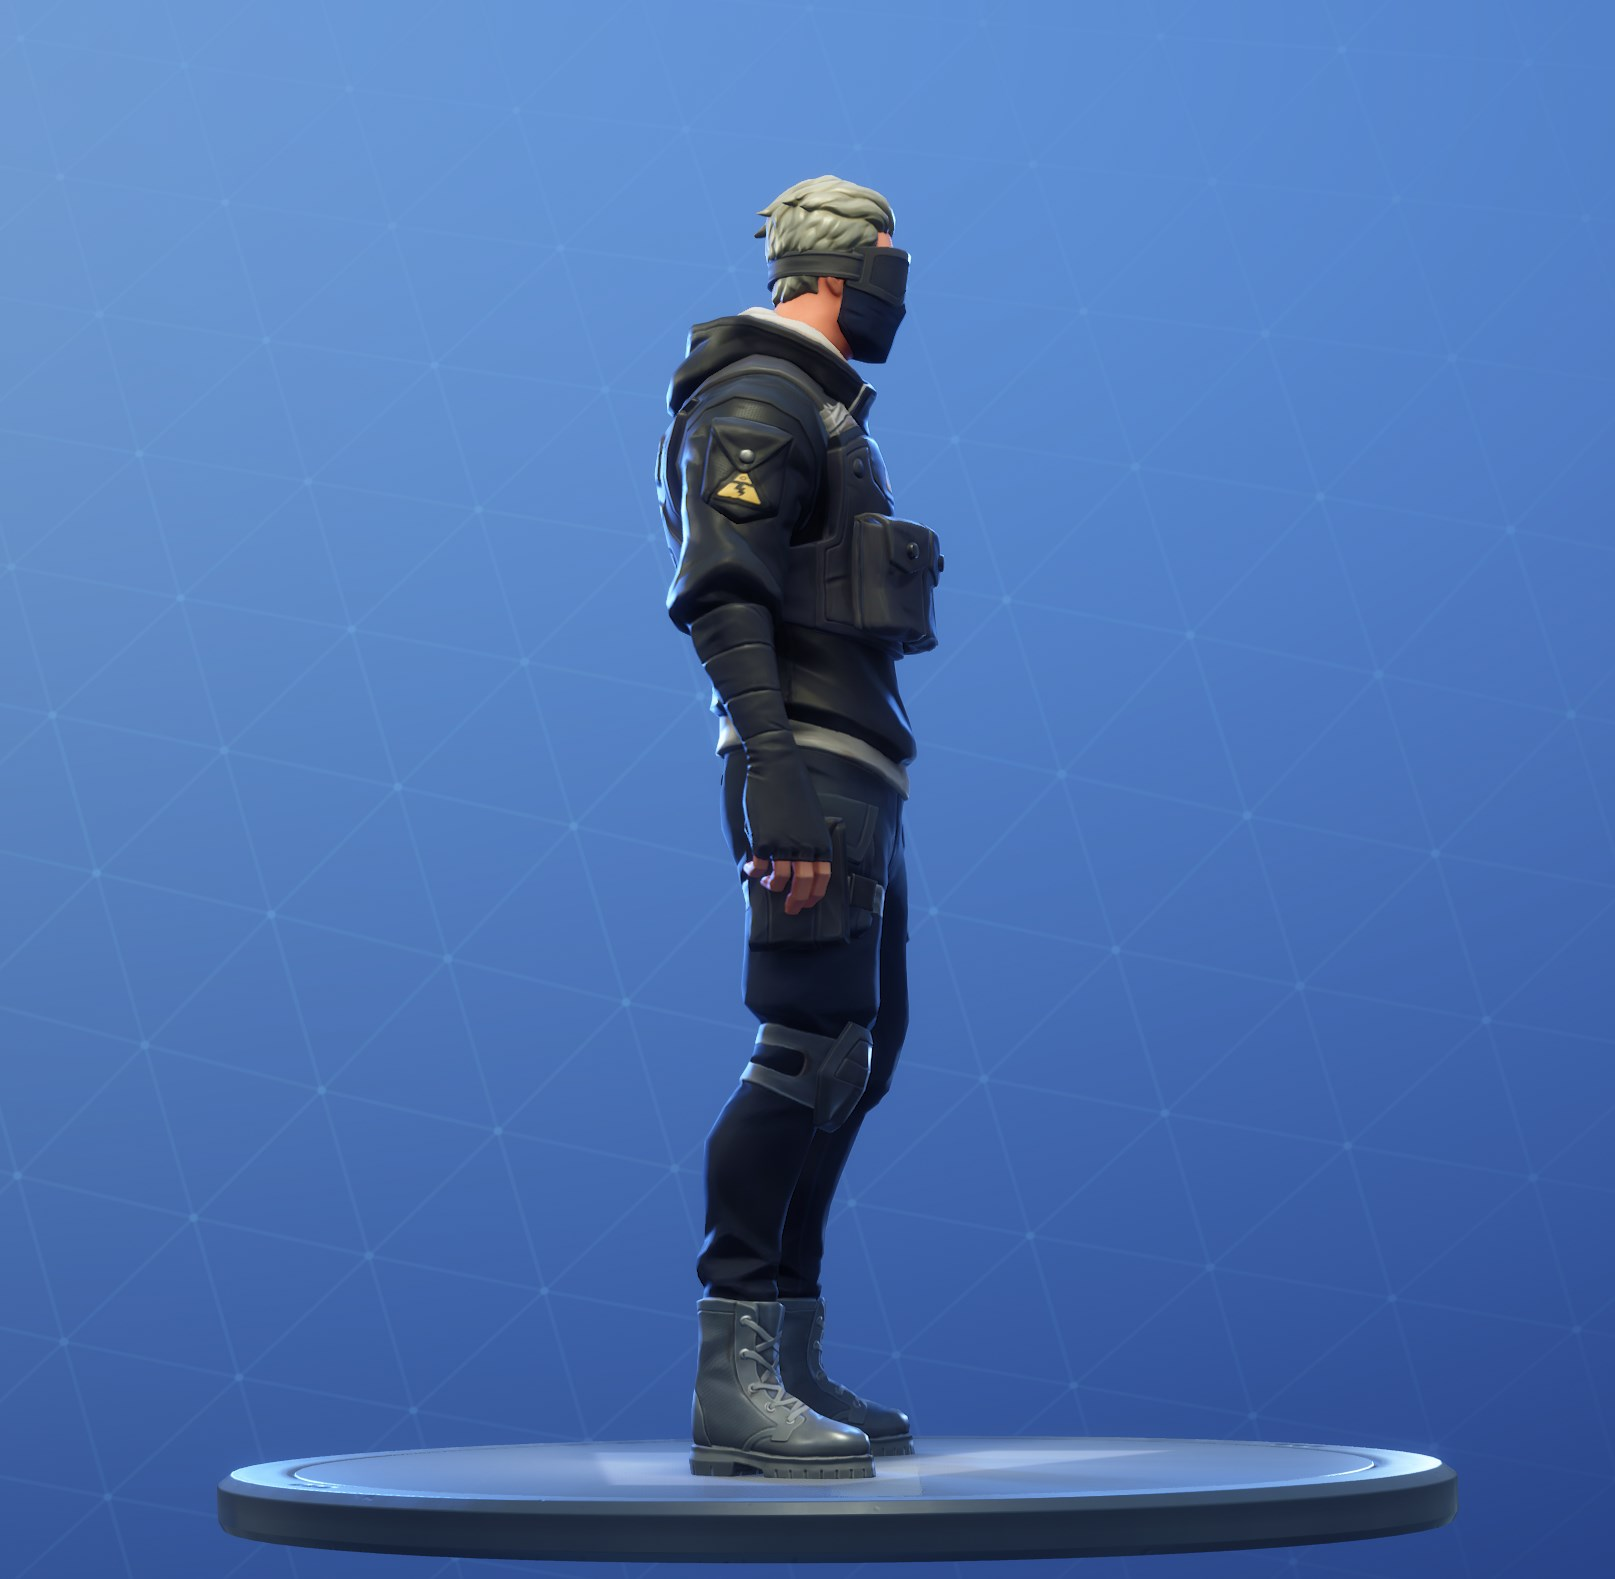 Fortnite Verge Skin Uncommon Outfit Fortnite Skins